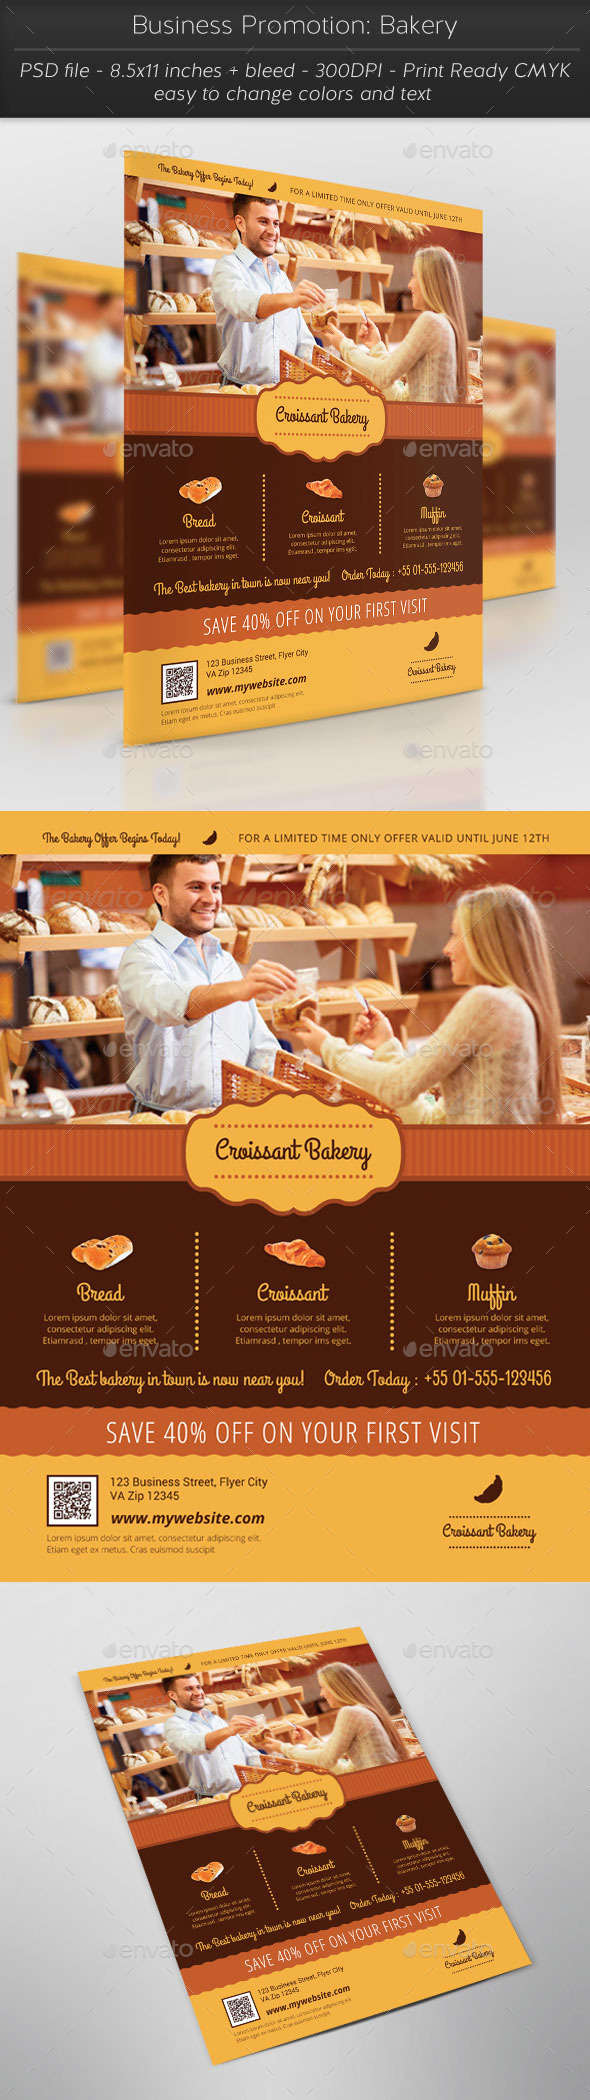 GraphicRiver Business Promotion Bakery 11393564